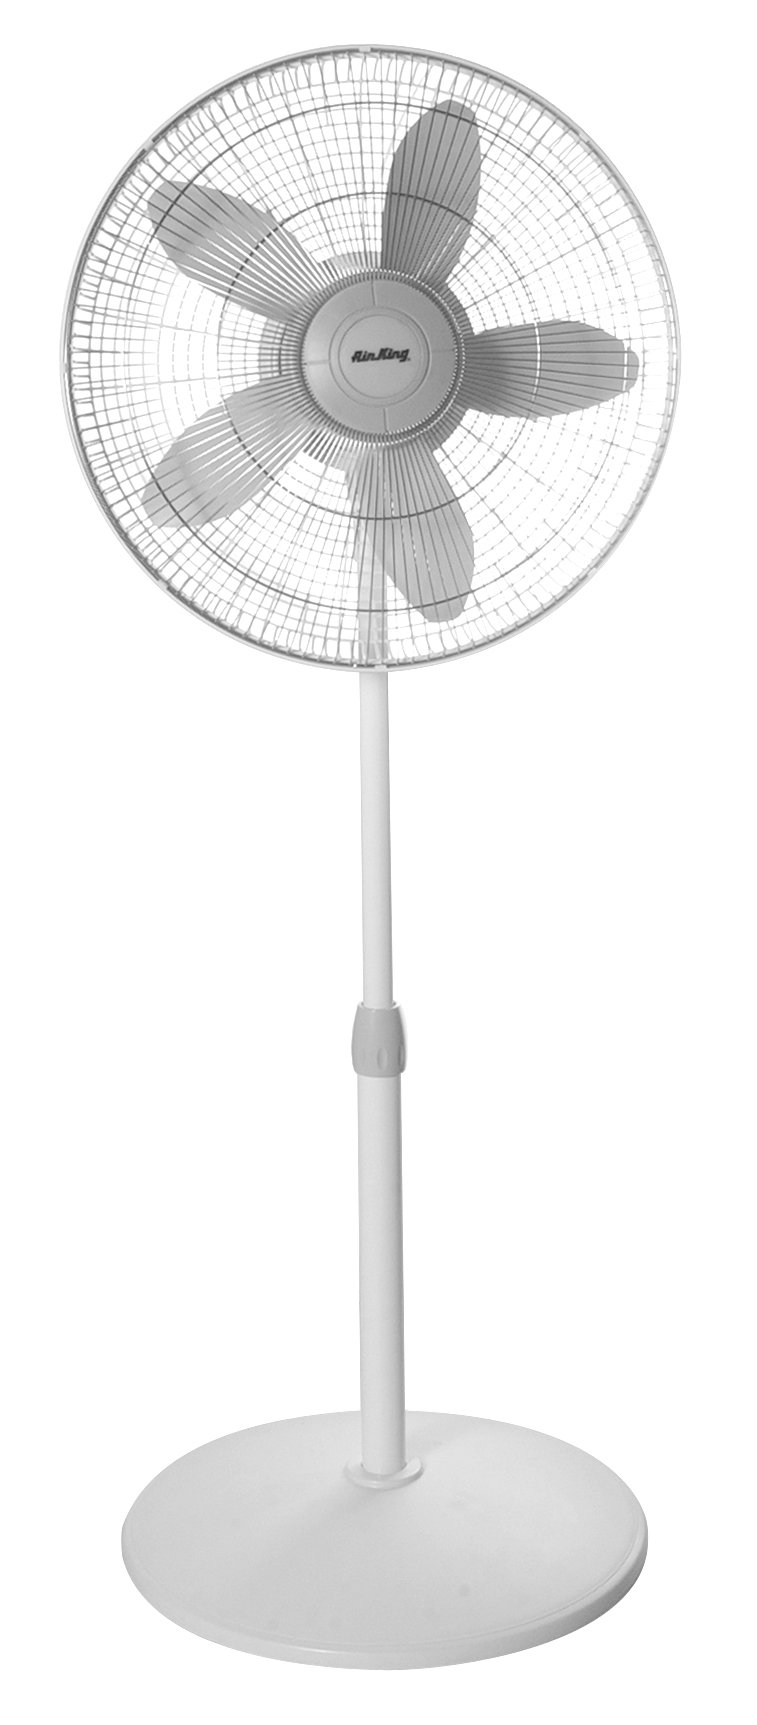 Air King 9119 18-Inch 3-Speed Commercial Grade Adjustable Oscillating Pedestal Fan, 1/20-Horsepower, White by Air King